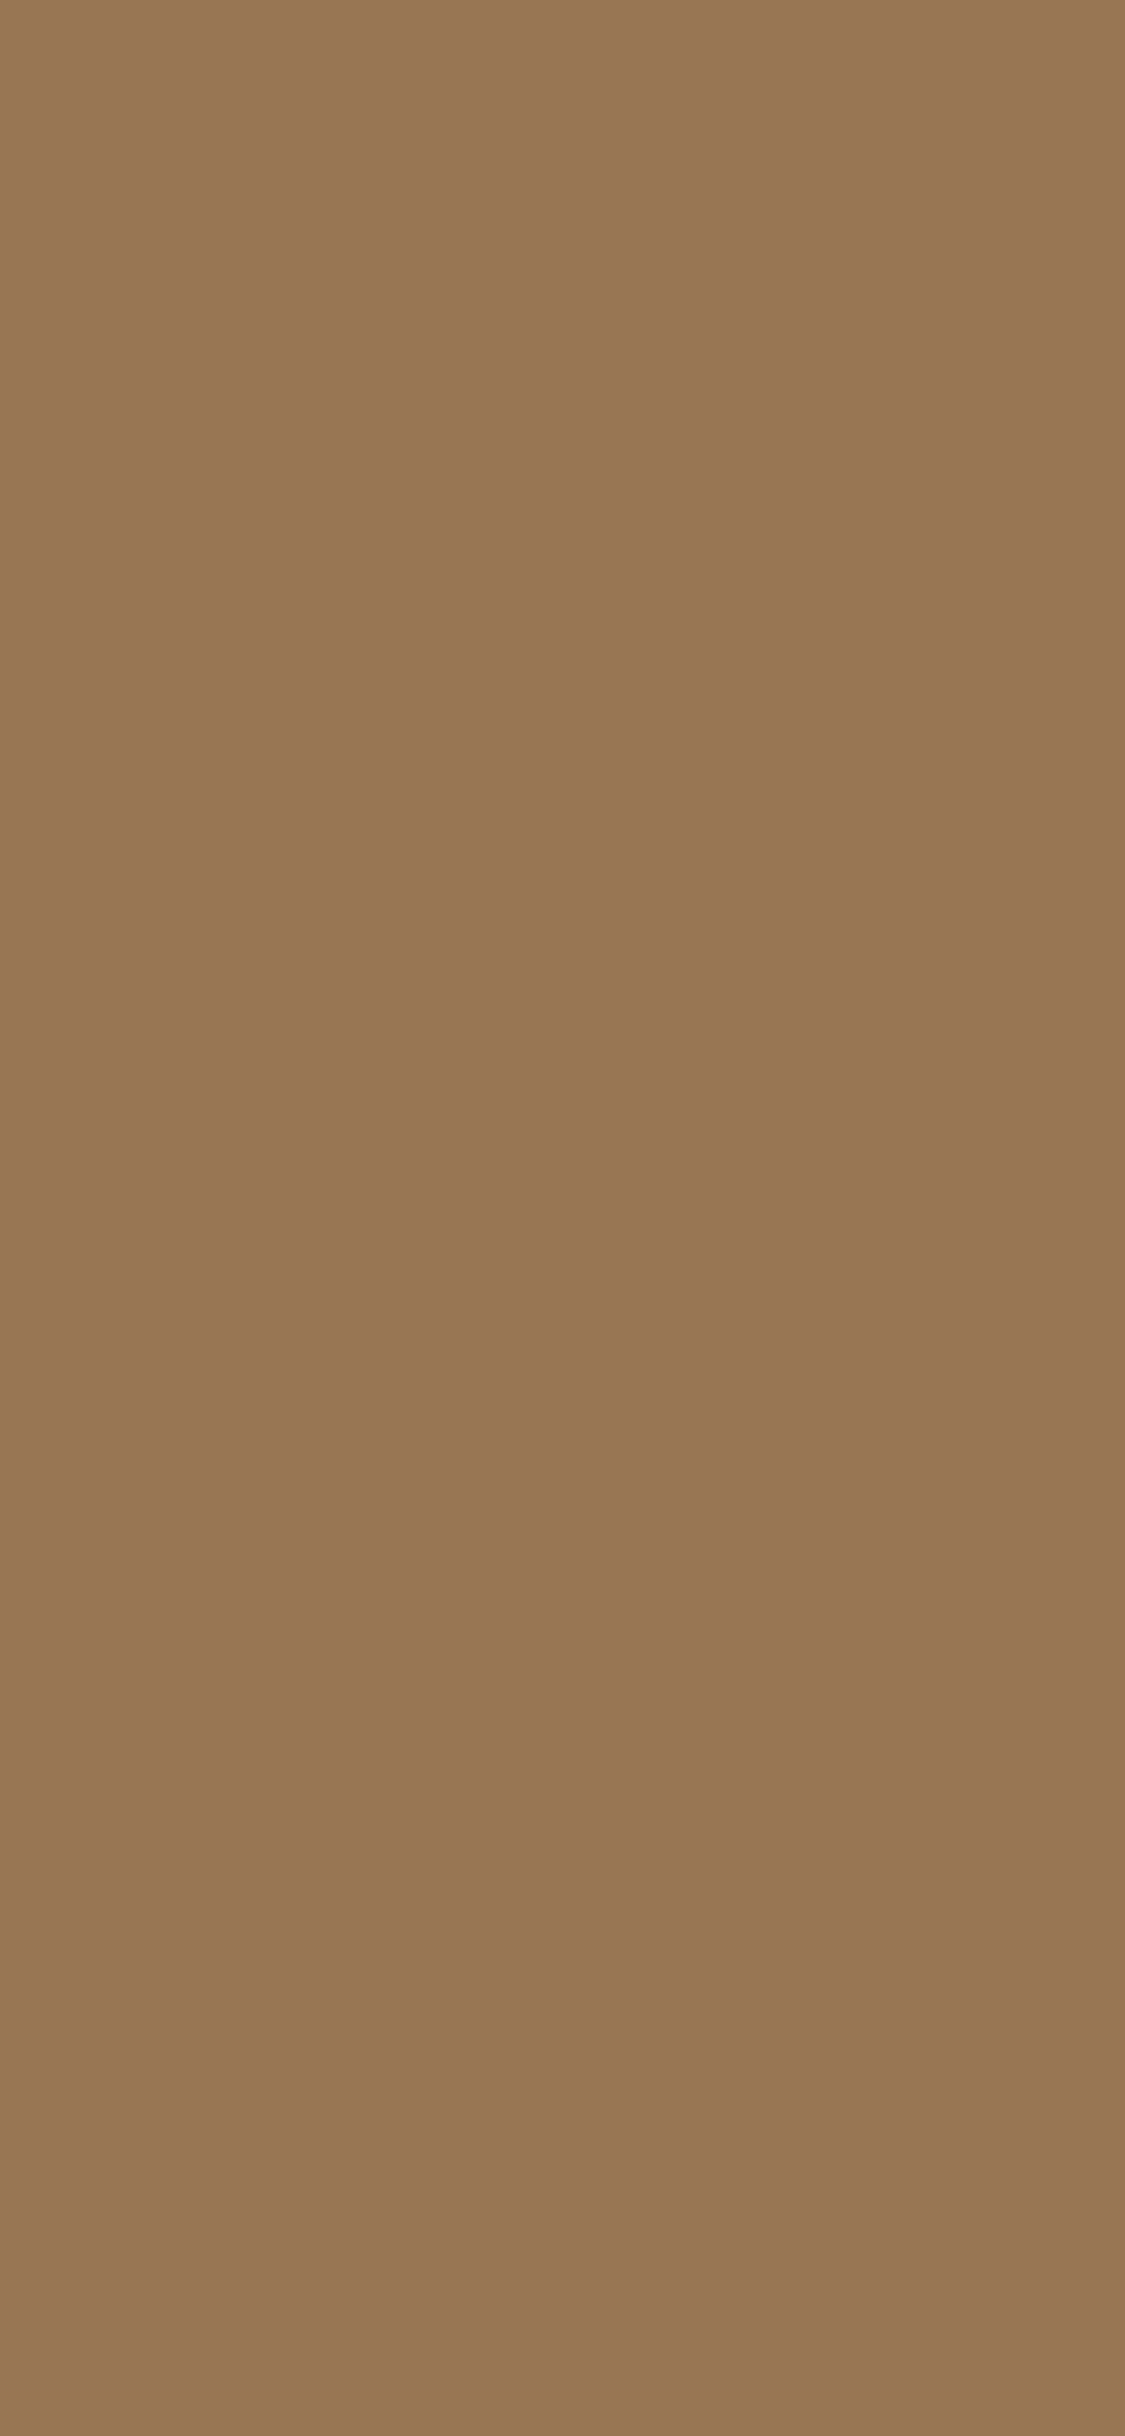 1125x2436 Pale Brown Solid Color Background